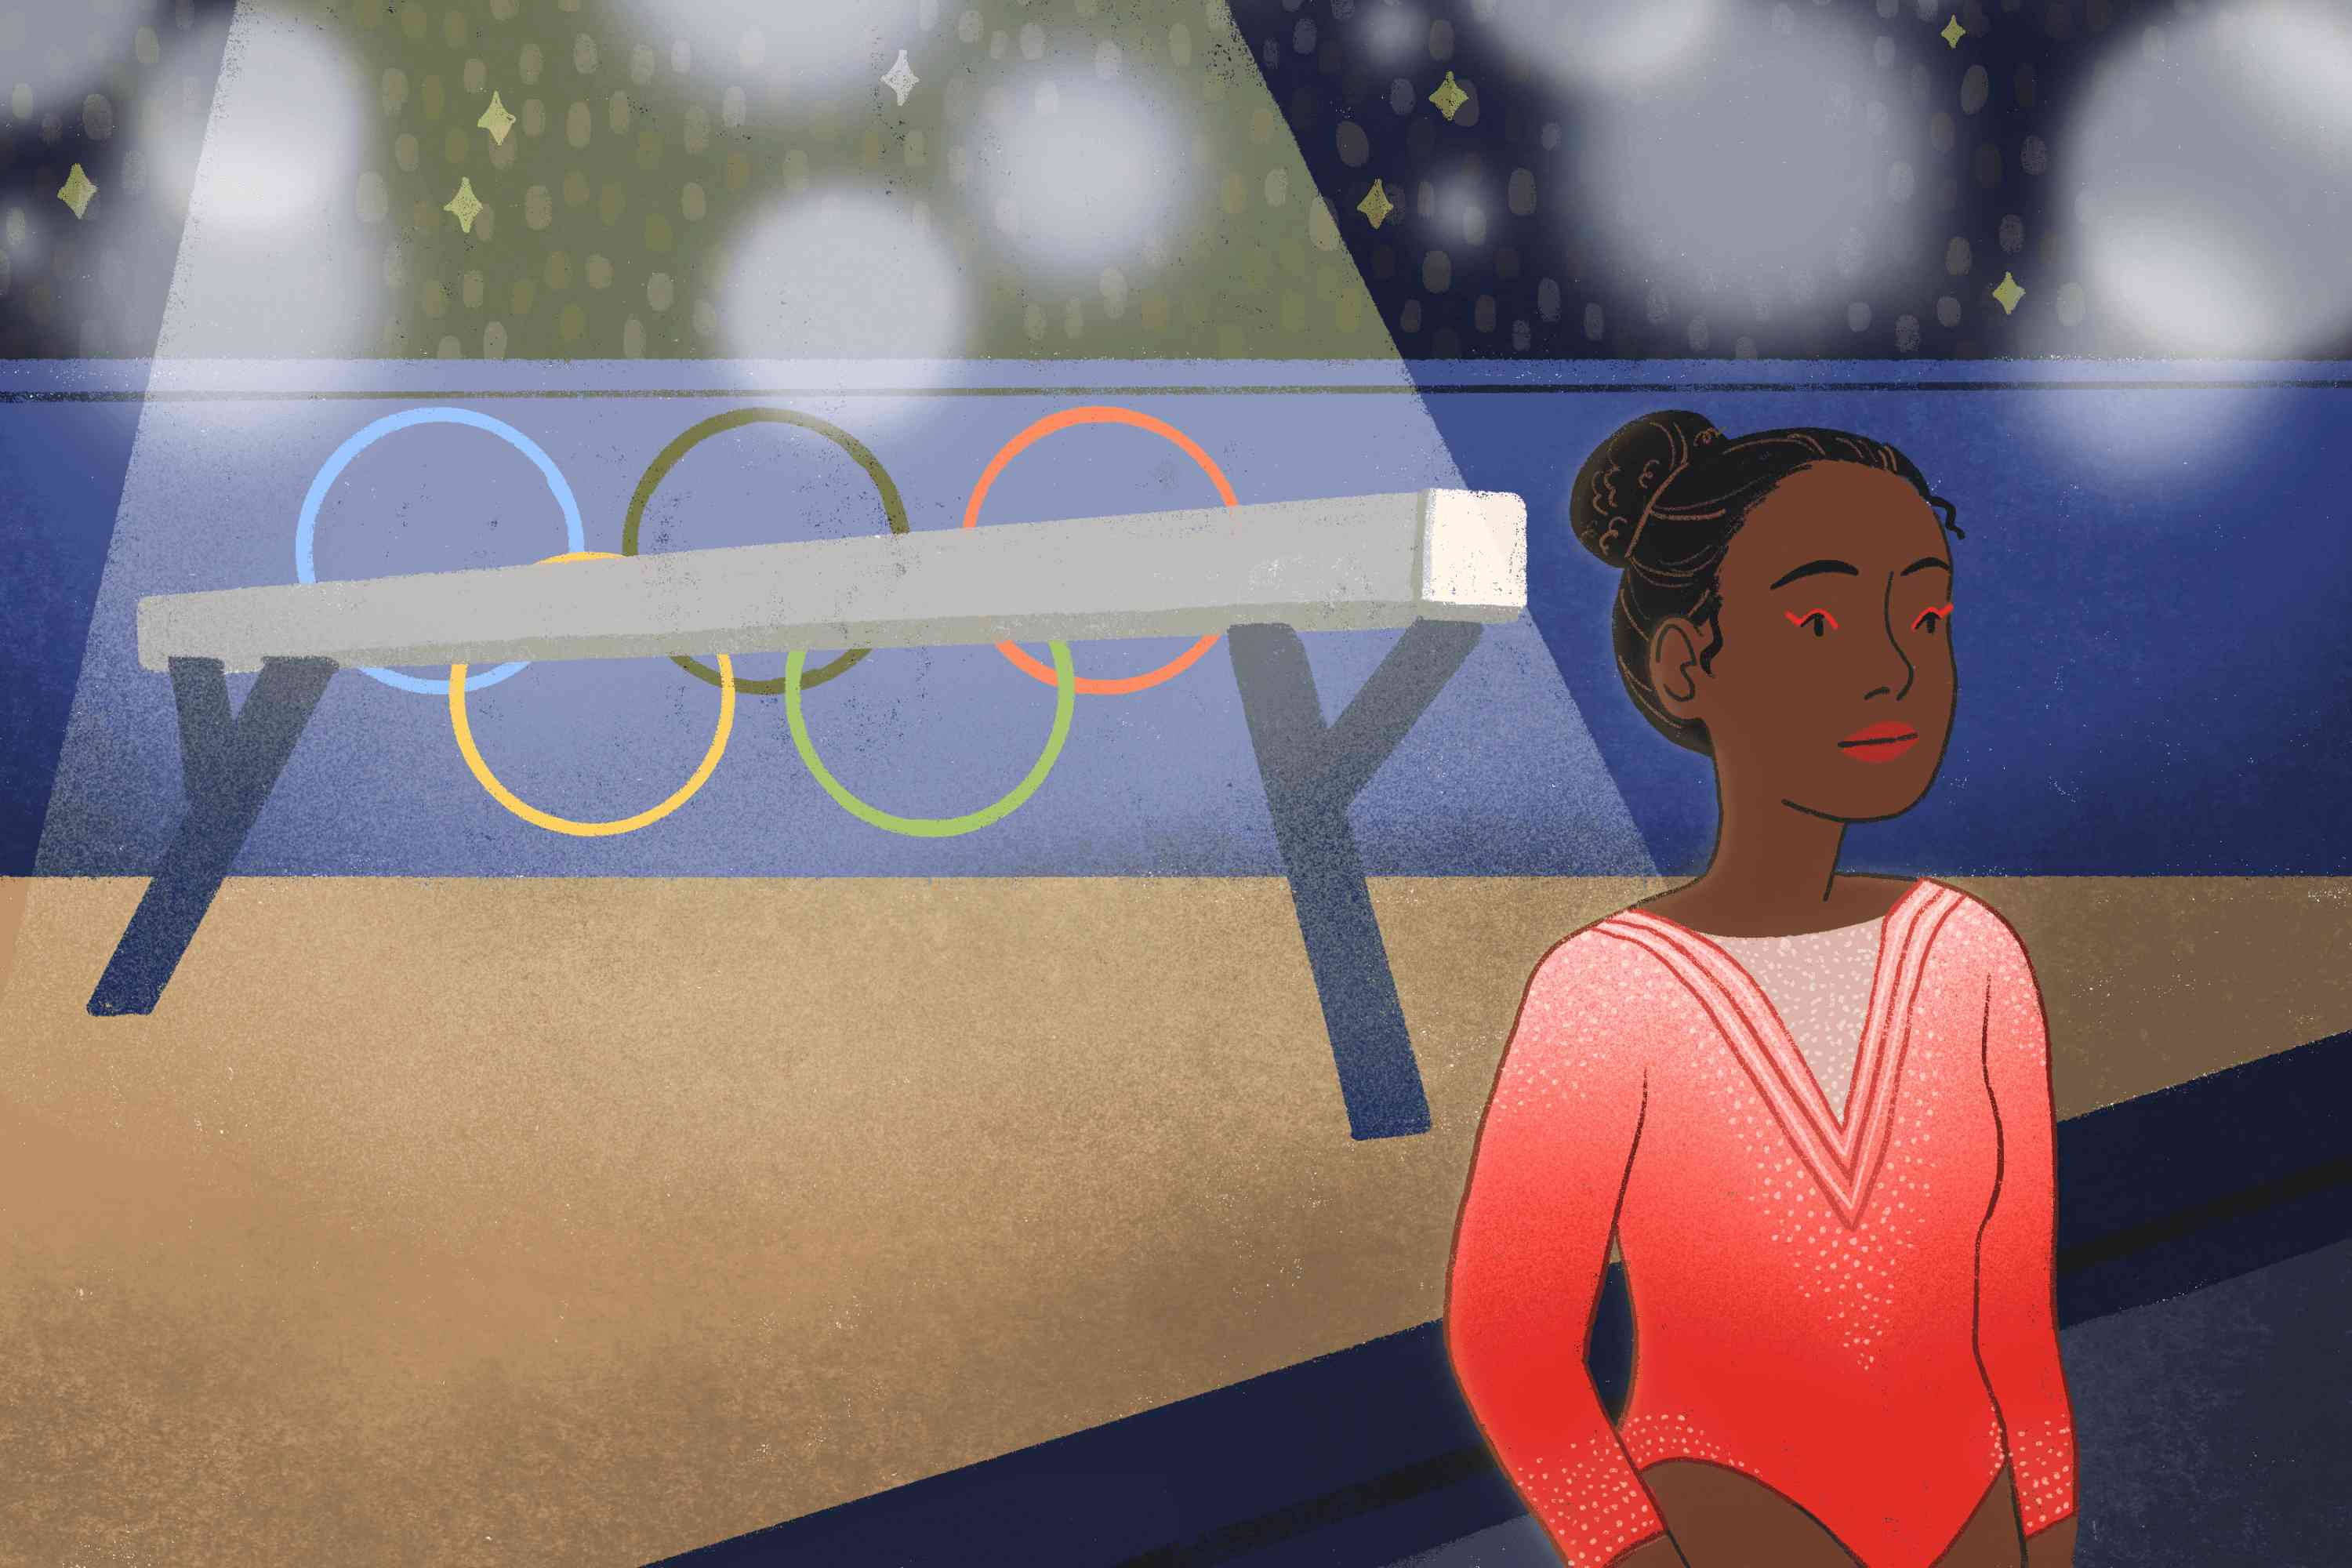 drawing of Simone Biles walking off the mat at the olympics